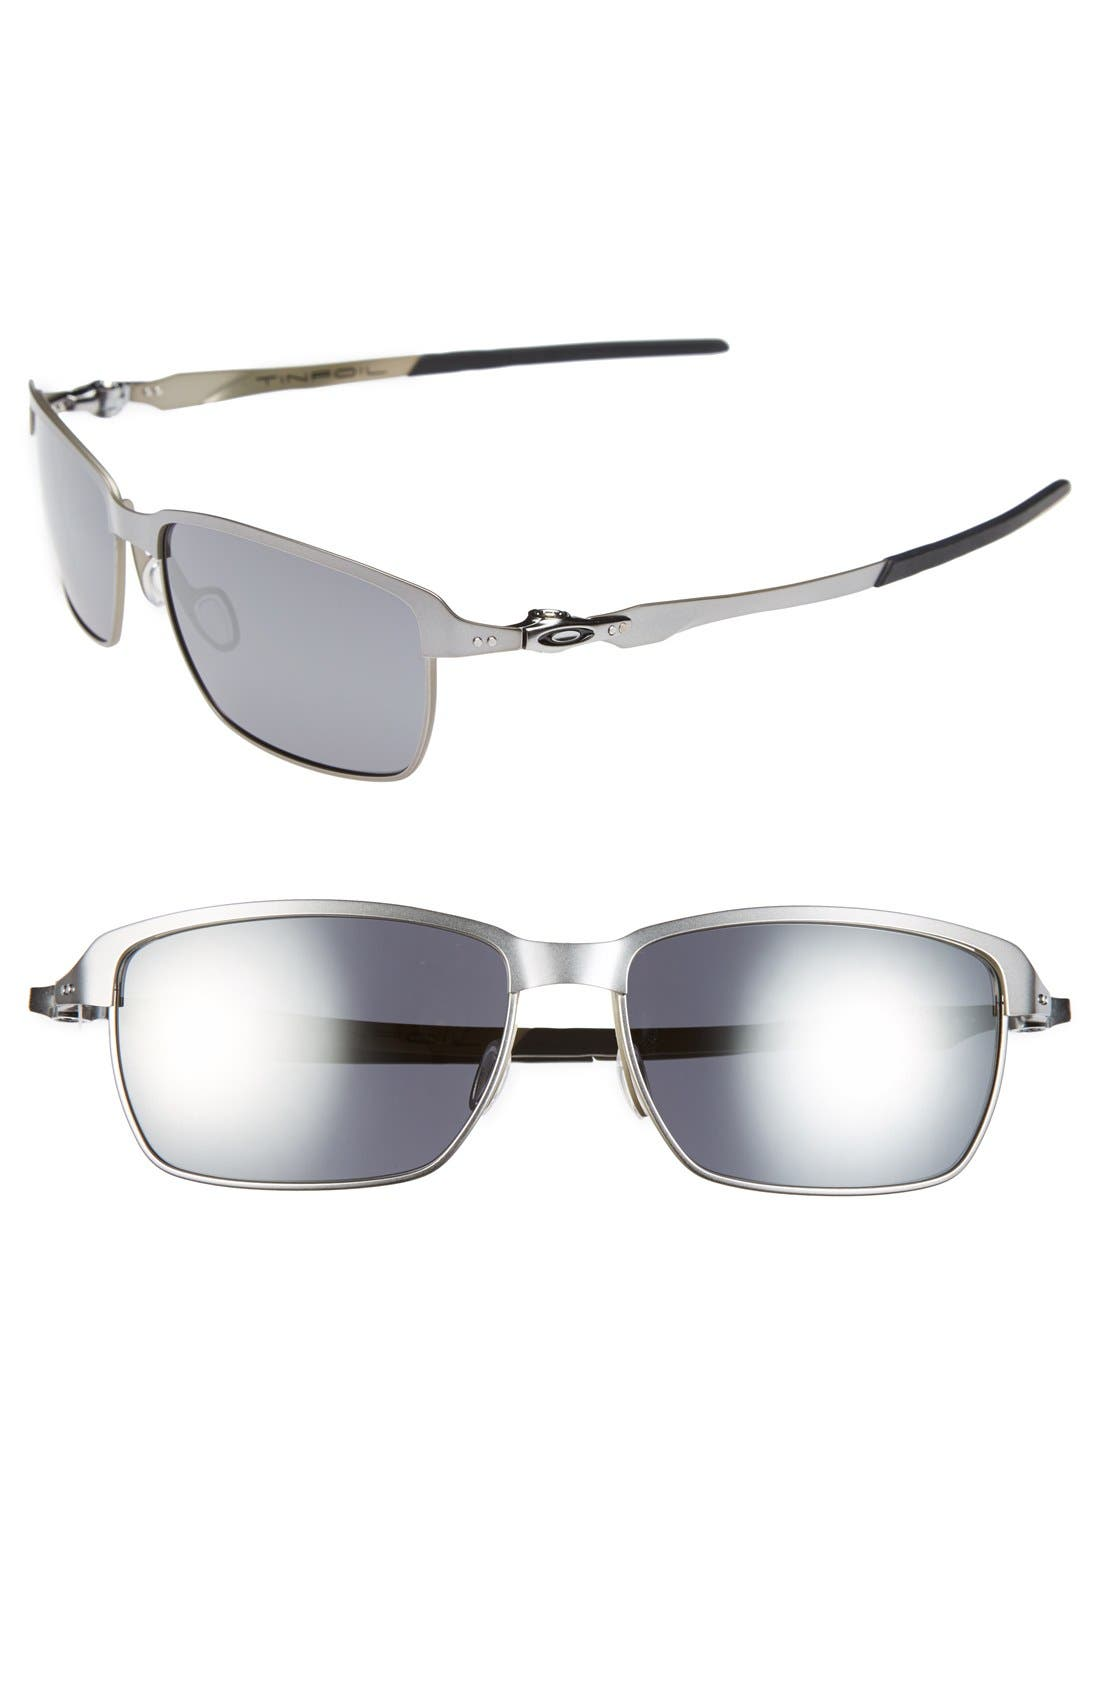 Alternate Image 1 Selected - Oakley 'Tinfoil' 58mm Sunglasses